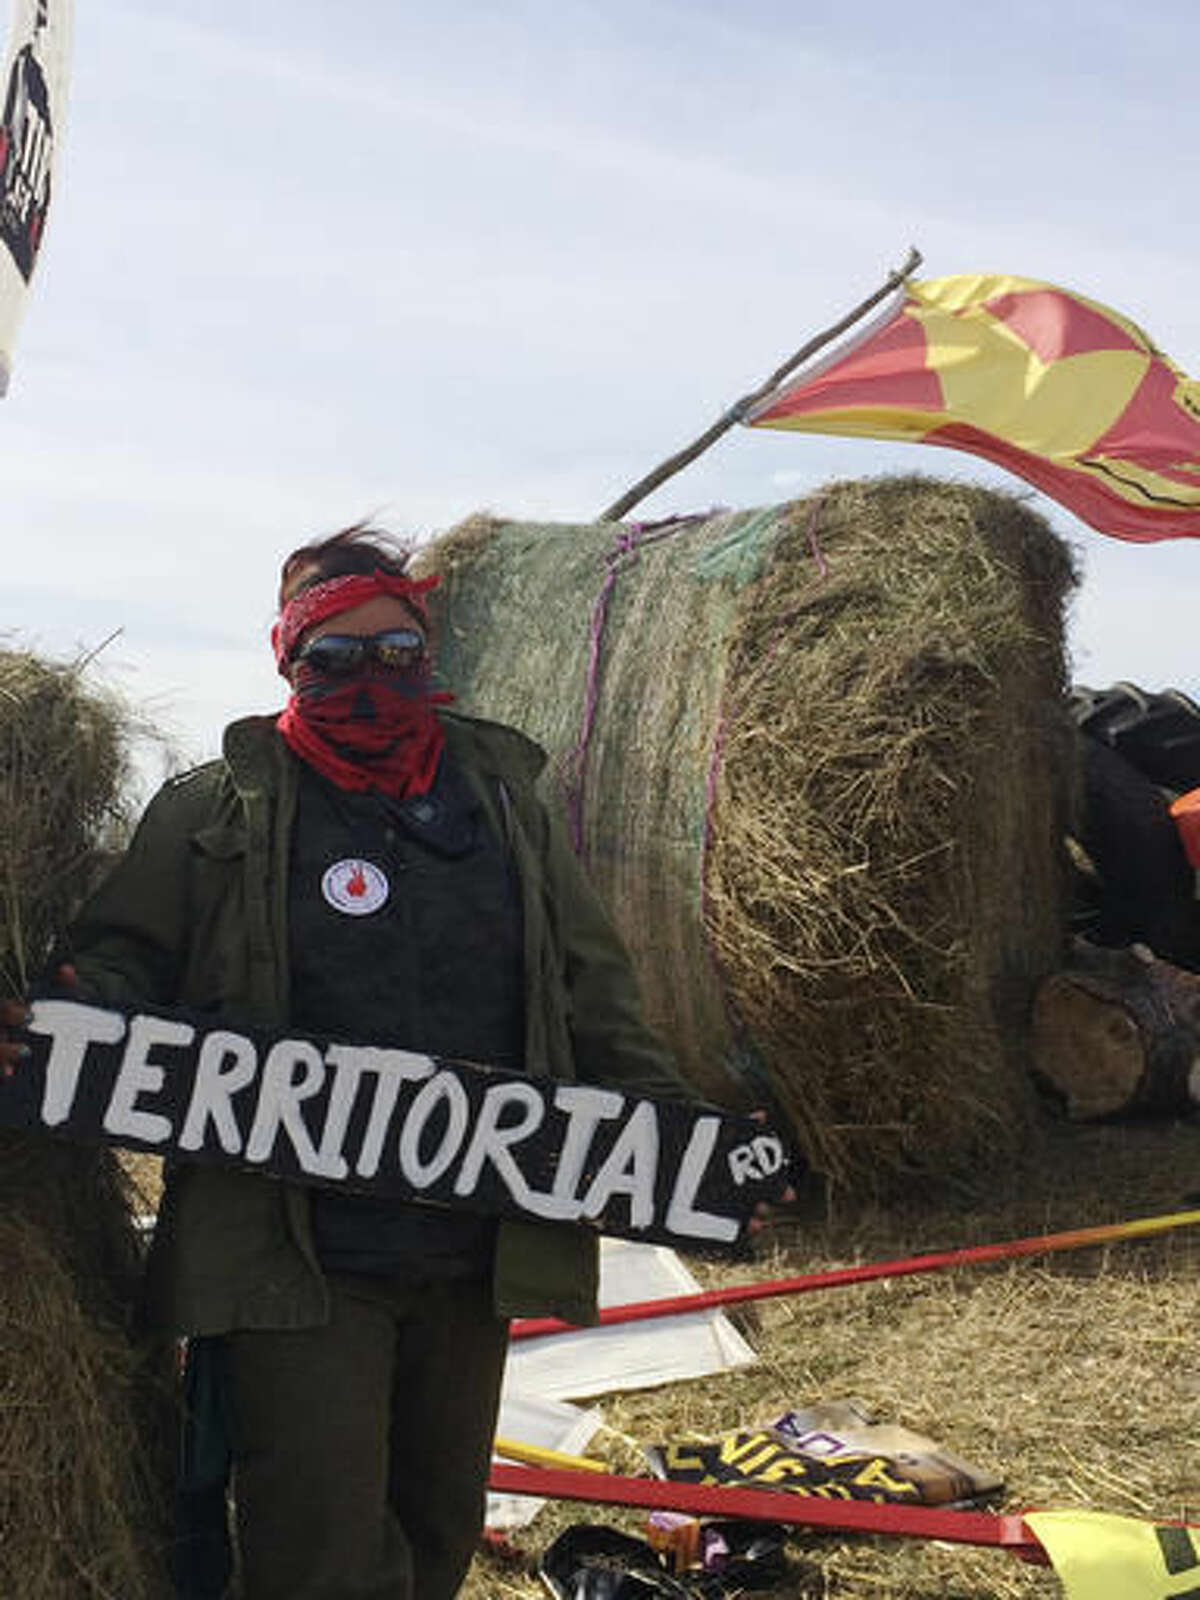 Vanessa Dundon, of White Cone, Ariz., helps handle security Monday, Oct. 24, 2016, at the Dakota Access oil pipeline protest in southern North Dakota. Bagola is sitting atop a pile of logs that protesters prepared to use to block a highway. The long-running dispute over the Dakota Access oil pipeline expanded to private land recently purchased by the pipeline builders, with protesters who say the area rightfully belongs to Native Americans setting up camp and vowing to stay put until the project is stopped. (AP Photo/Blake Nicholson)